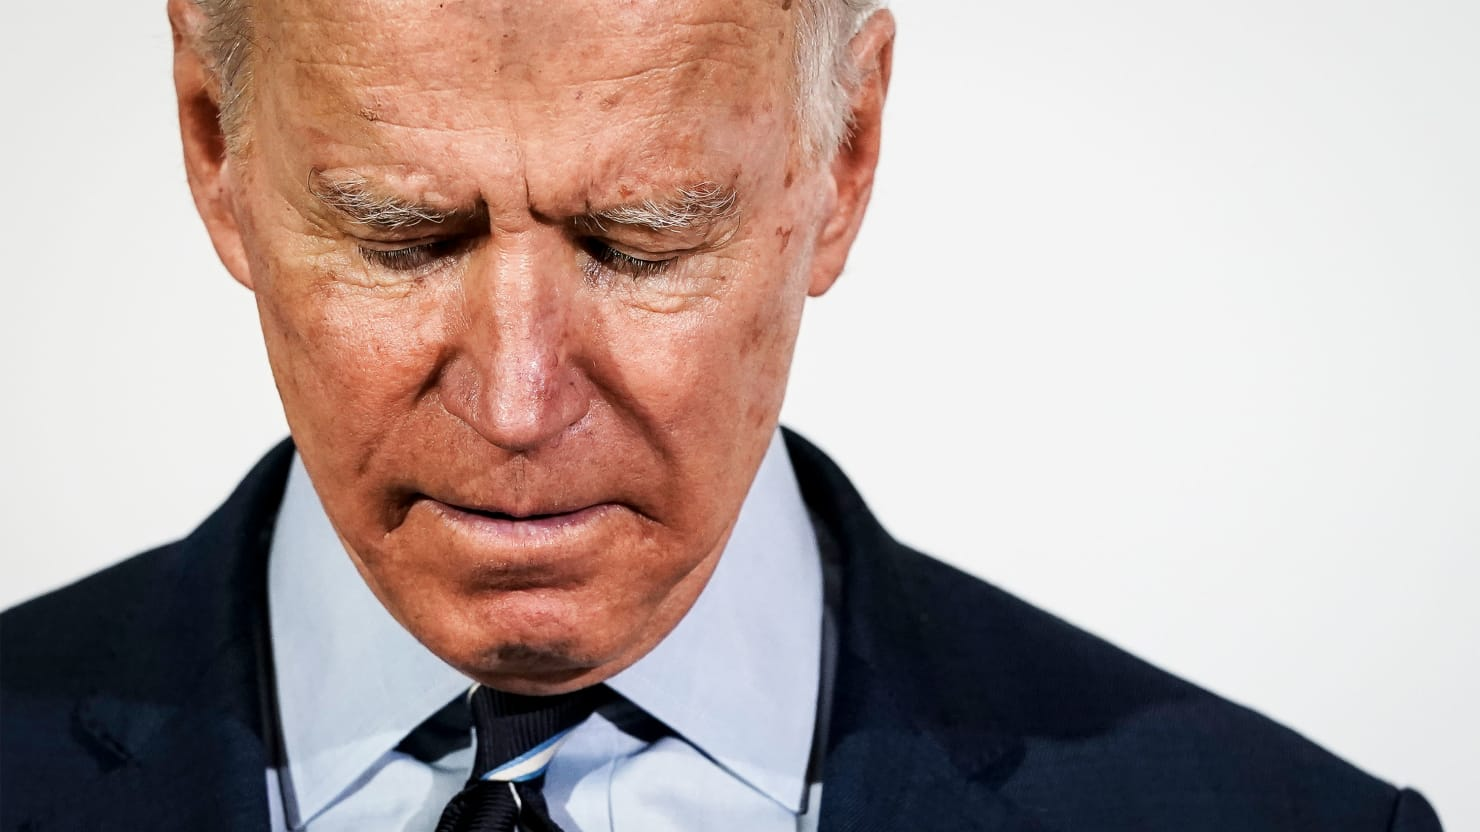 Oh No! Is Ukraine About the Re-Open the Biden Investigation?